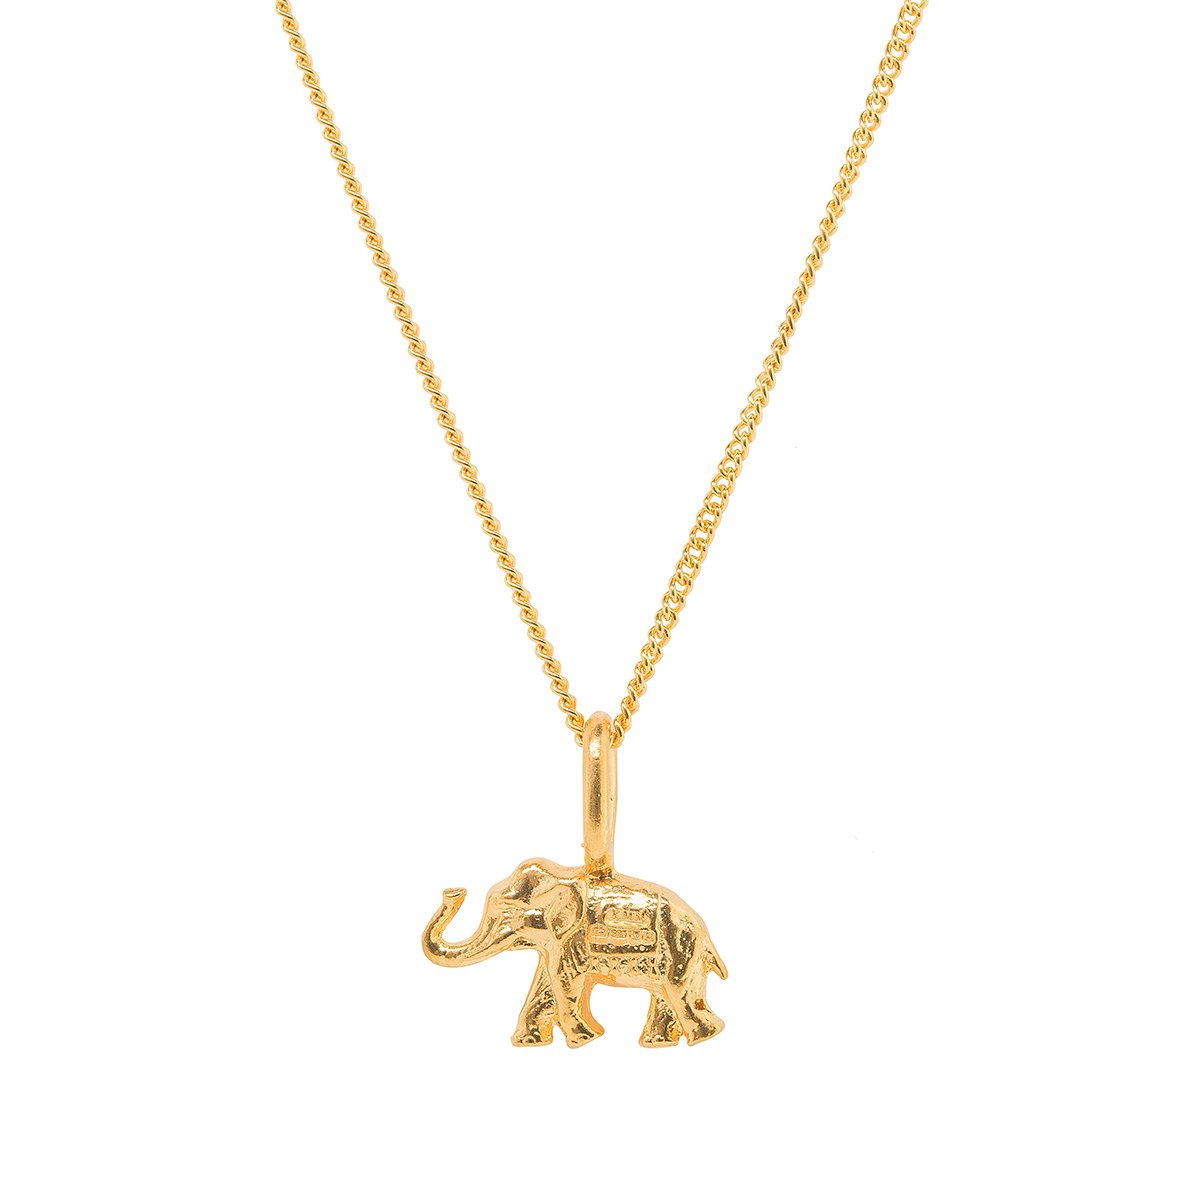 Elephant Gold Plated Charm-Katie Mullally-JewelStreet US